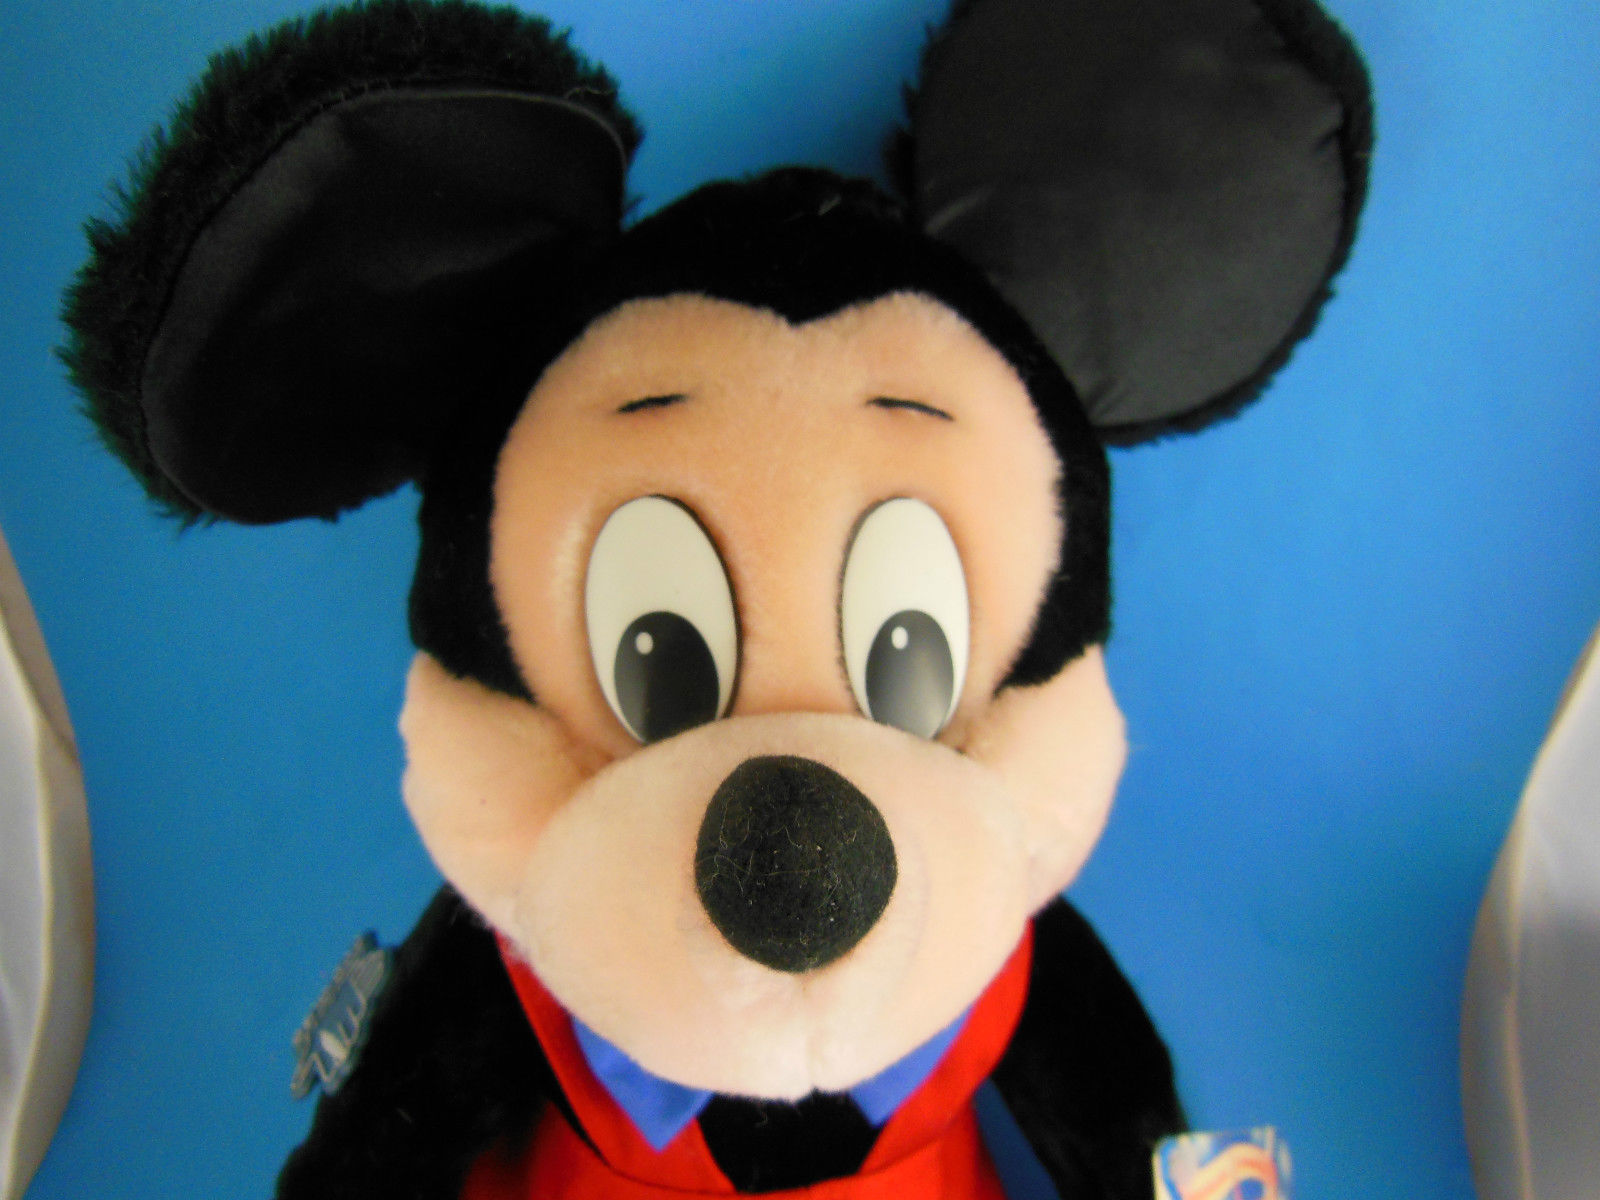 "Vintage Korea Mickey Mouse Doll Disney Applause 17"" inc ears Velvetty fabric MWT image 4"